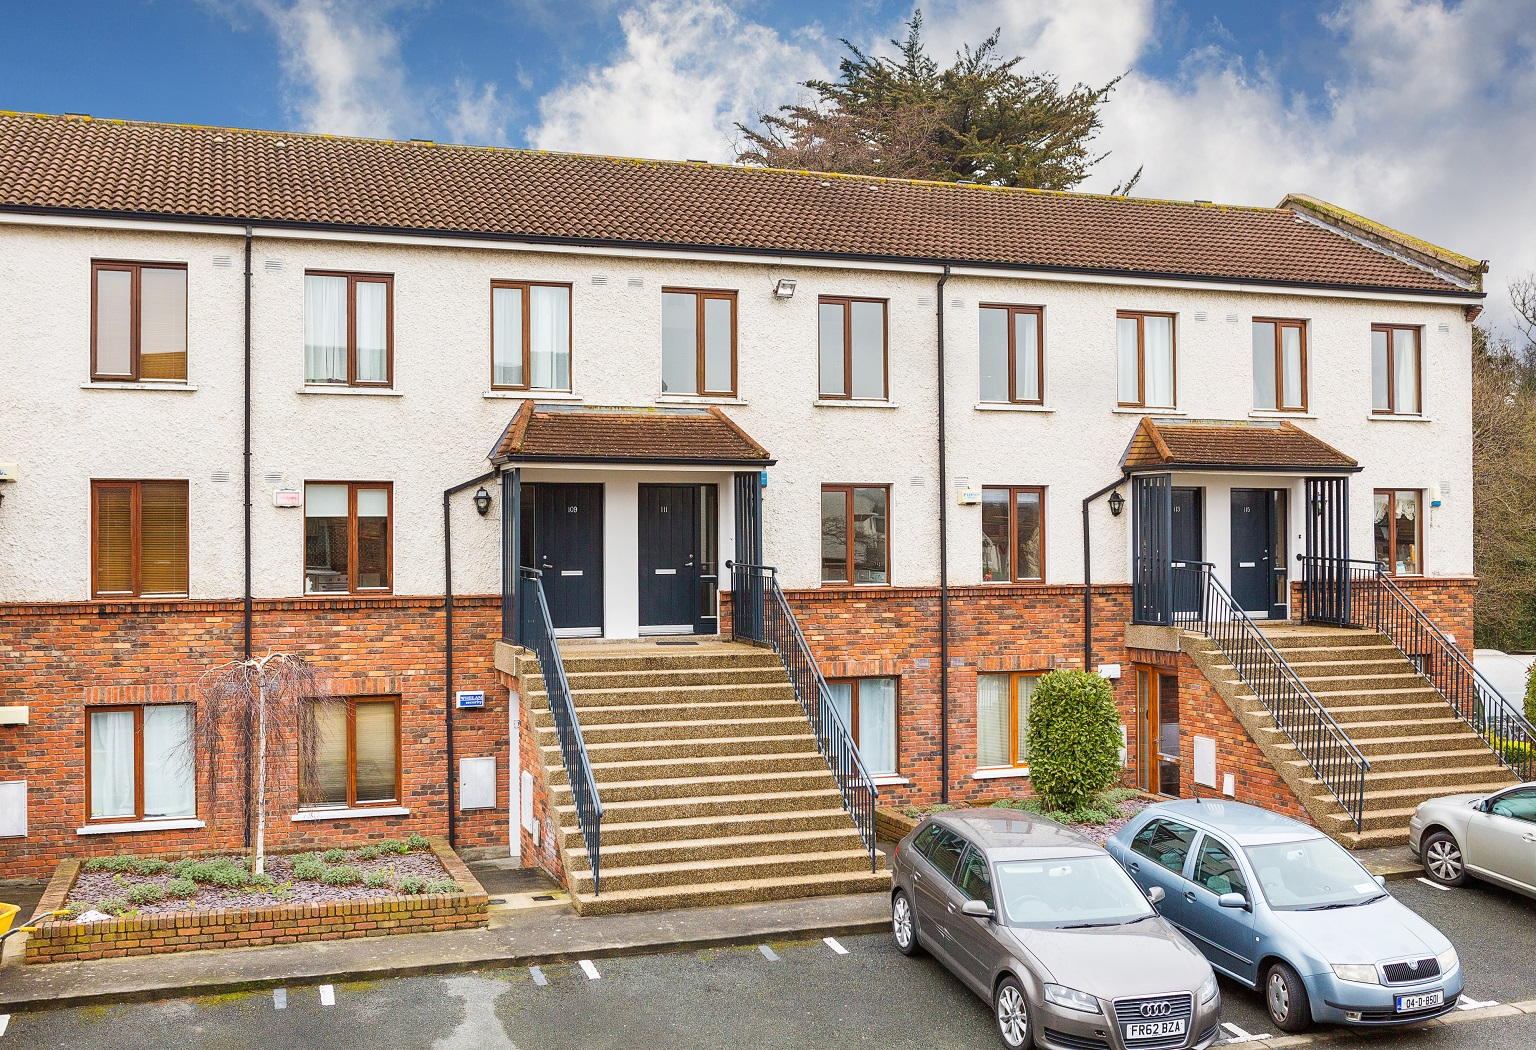 111 Merrion Grove, Stillorgan, Co. Dublin